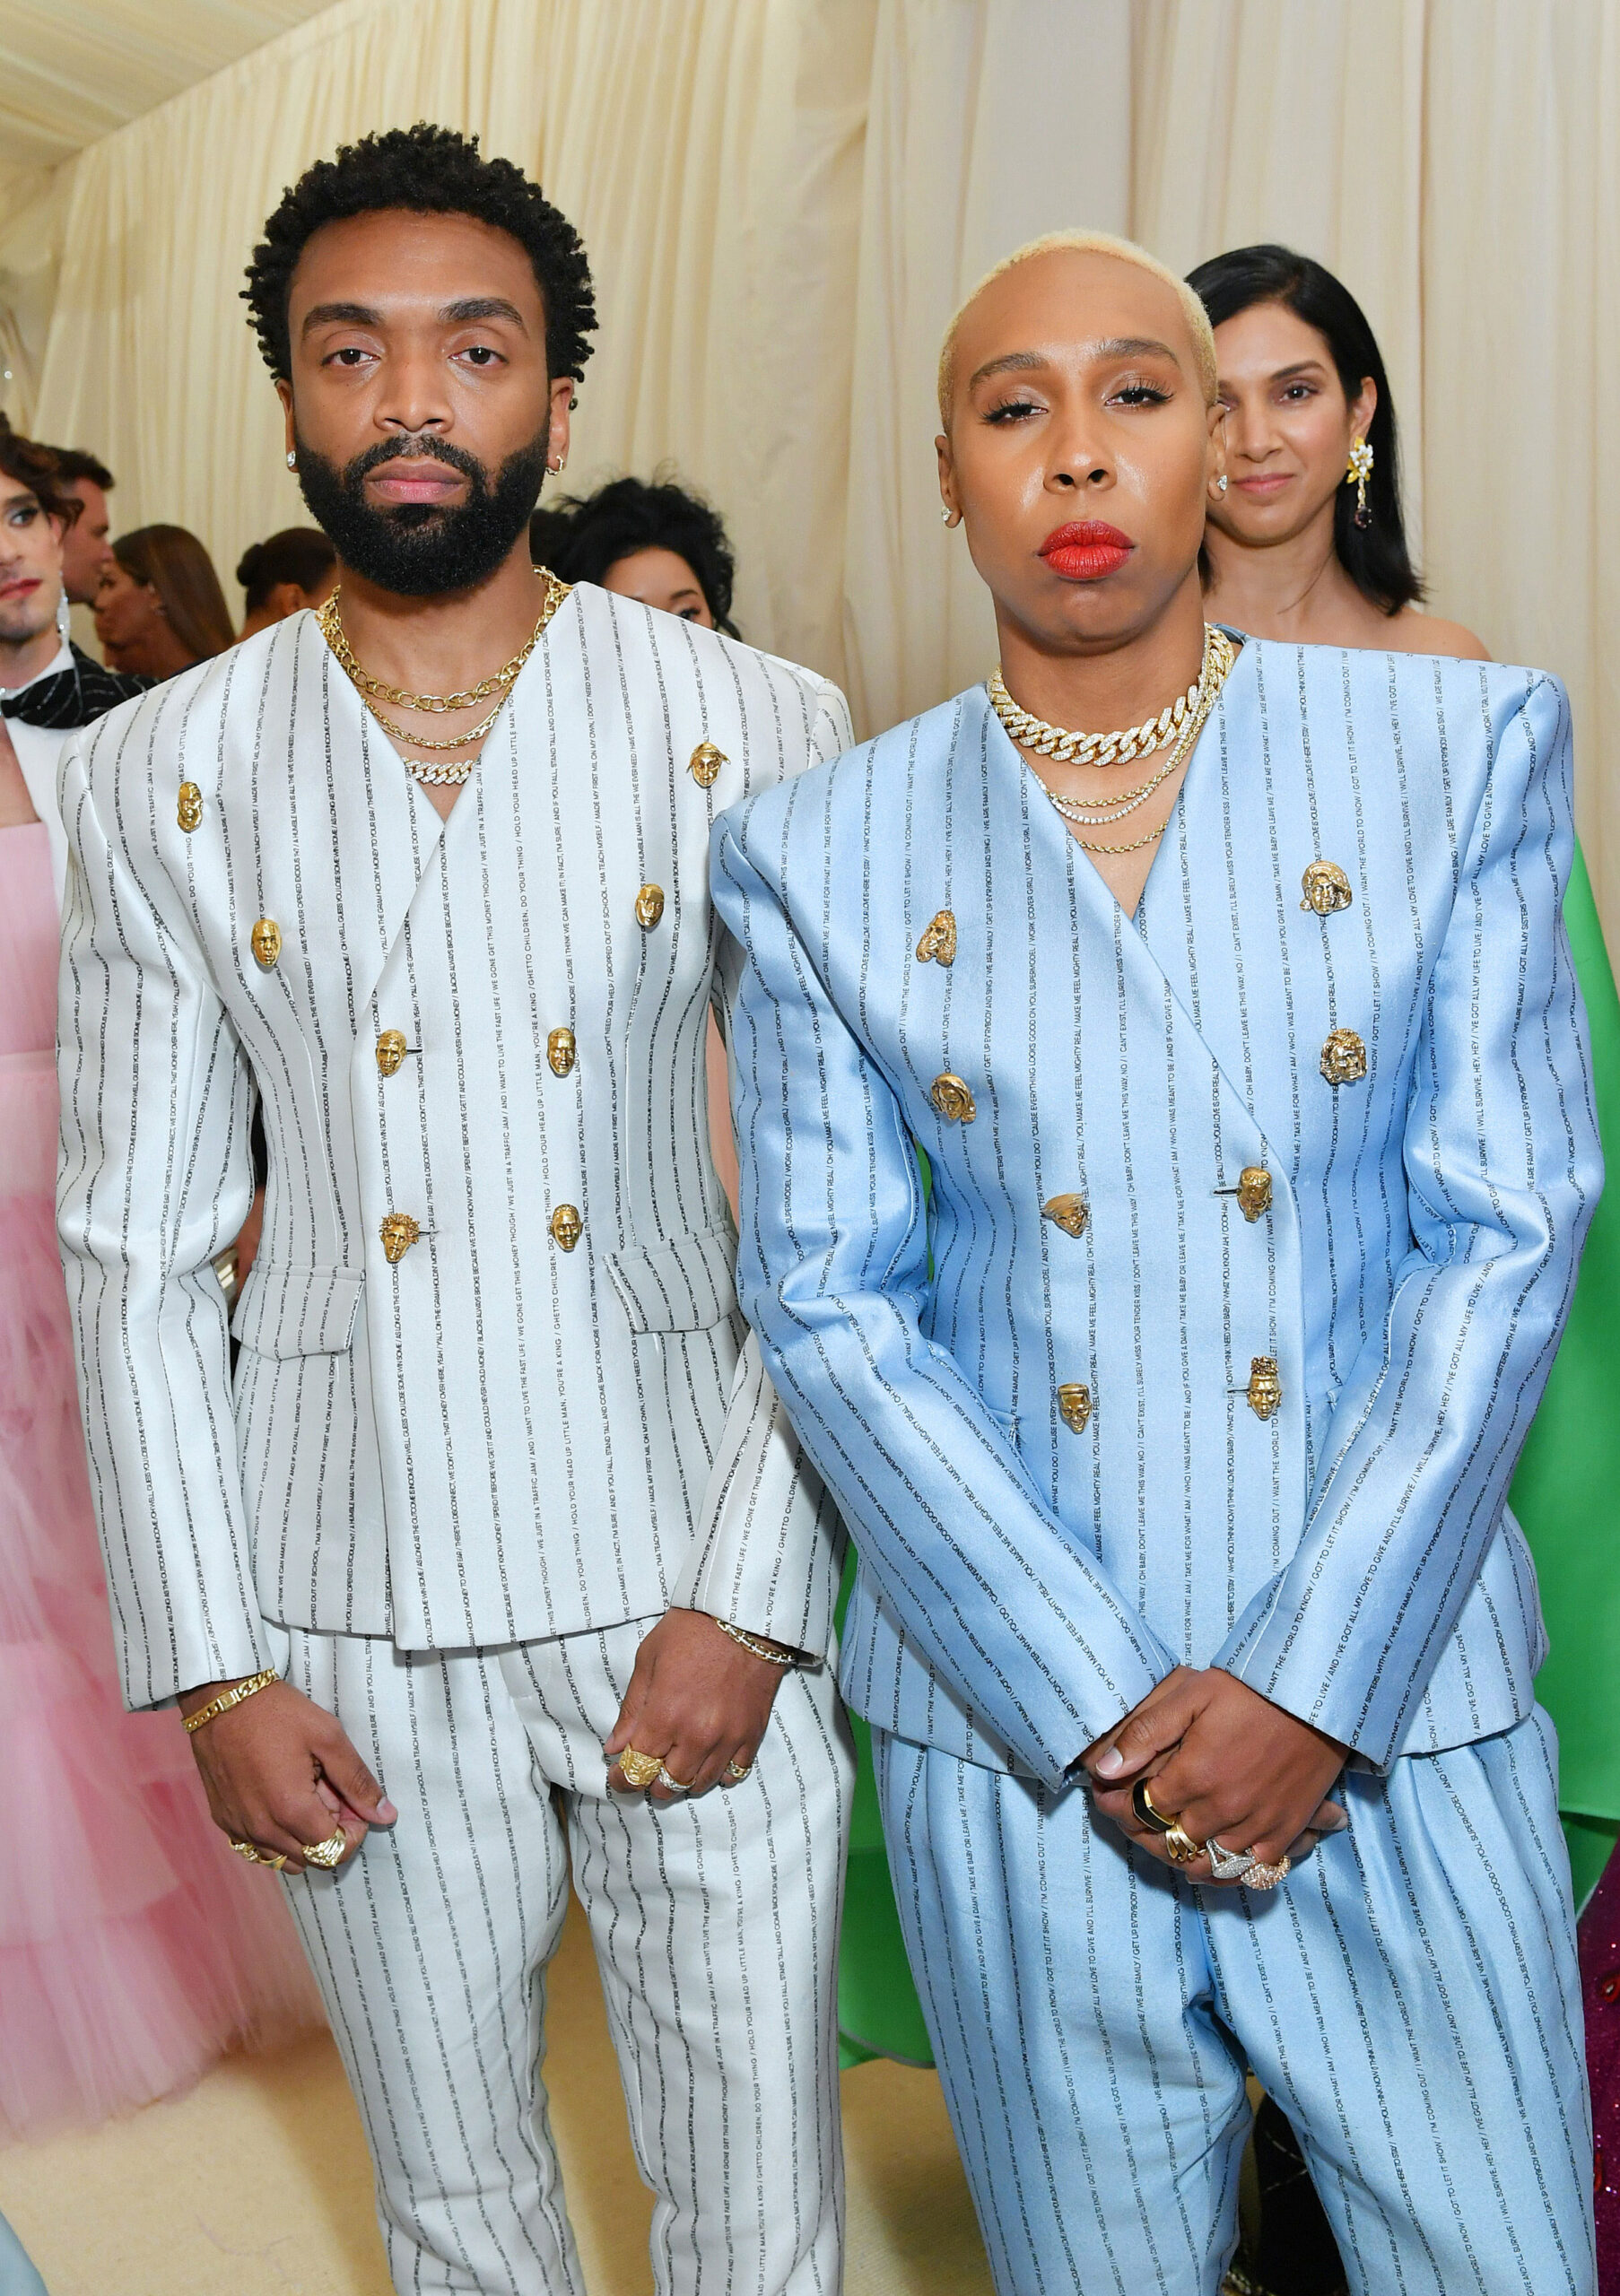 <i>Mike Coppola/Getty Images</i><br/>Pyer Moss founder Kerby Jean-Raymond and actor Lena Waithe both wearing suits with custom Johnny Nelson buttons to the 2019 Met Gala.